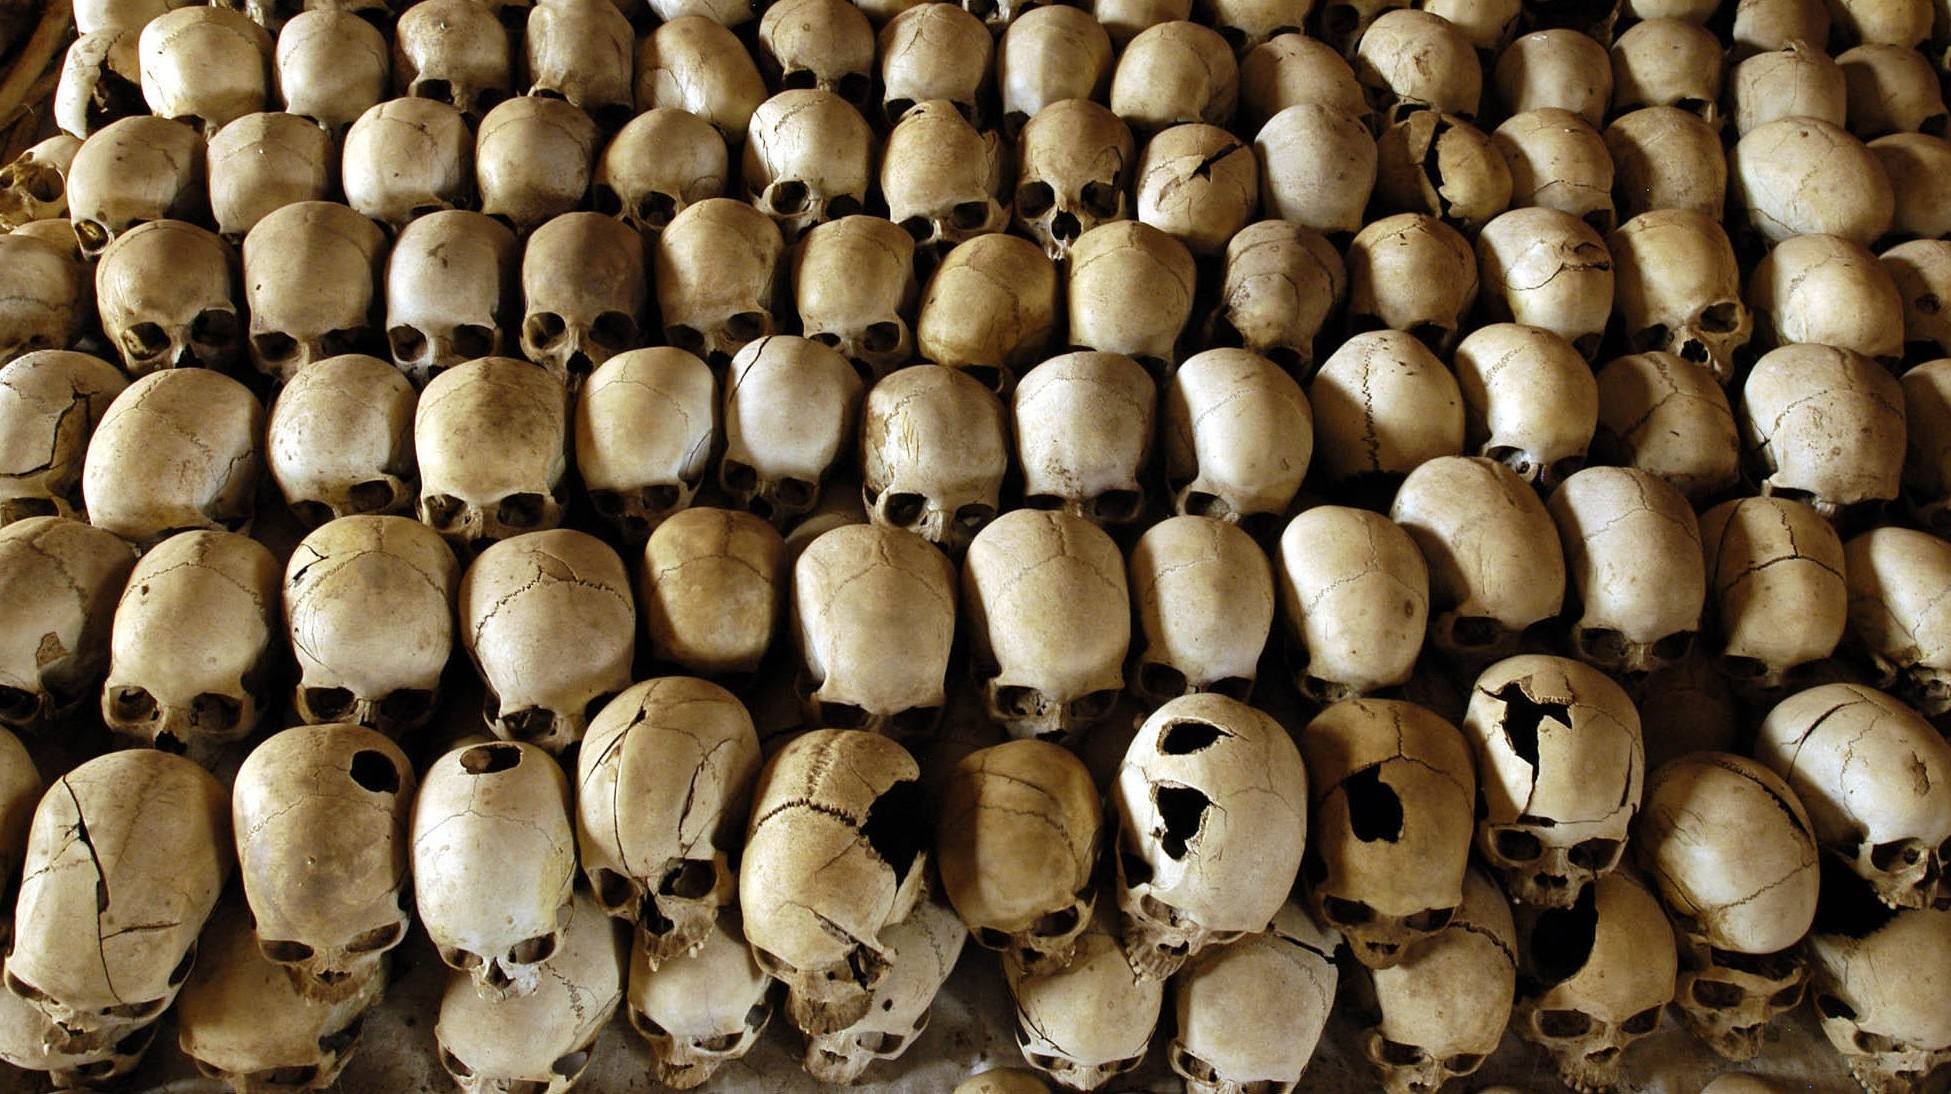 skulls-of-victims-of-the-ntarama-massacre-during-the-1994-rwandan-genocide-aap-1-e1443308124563